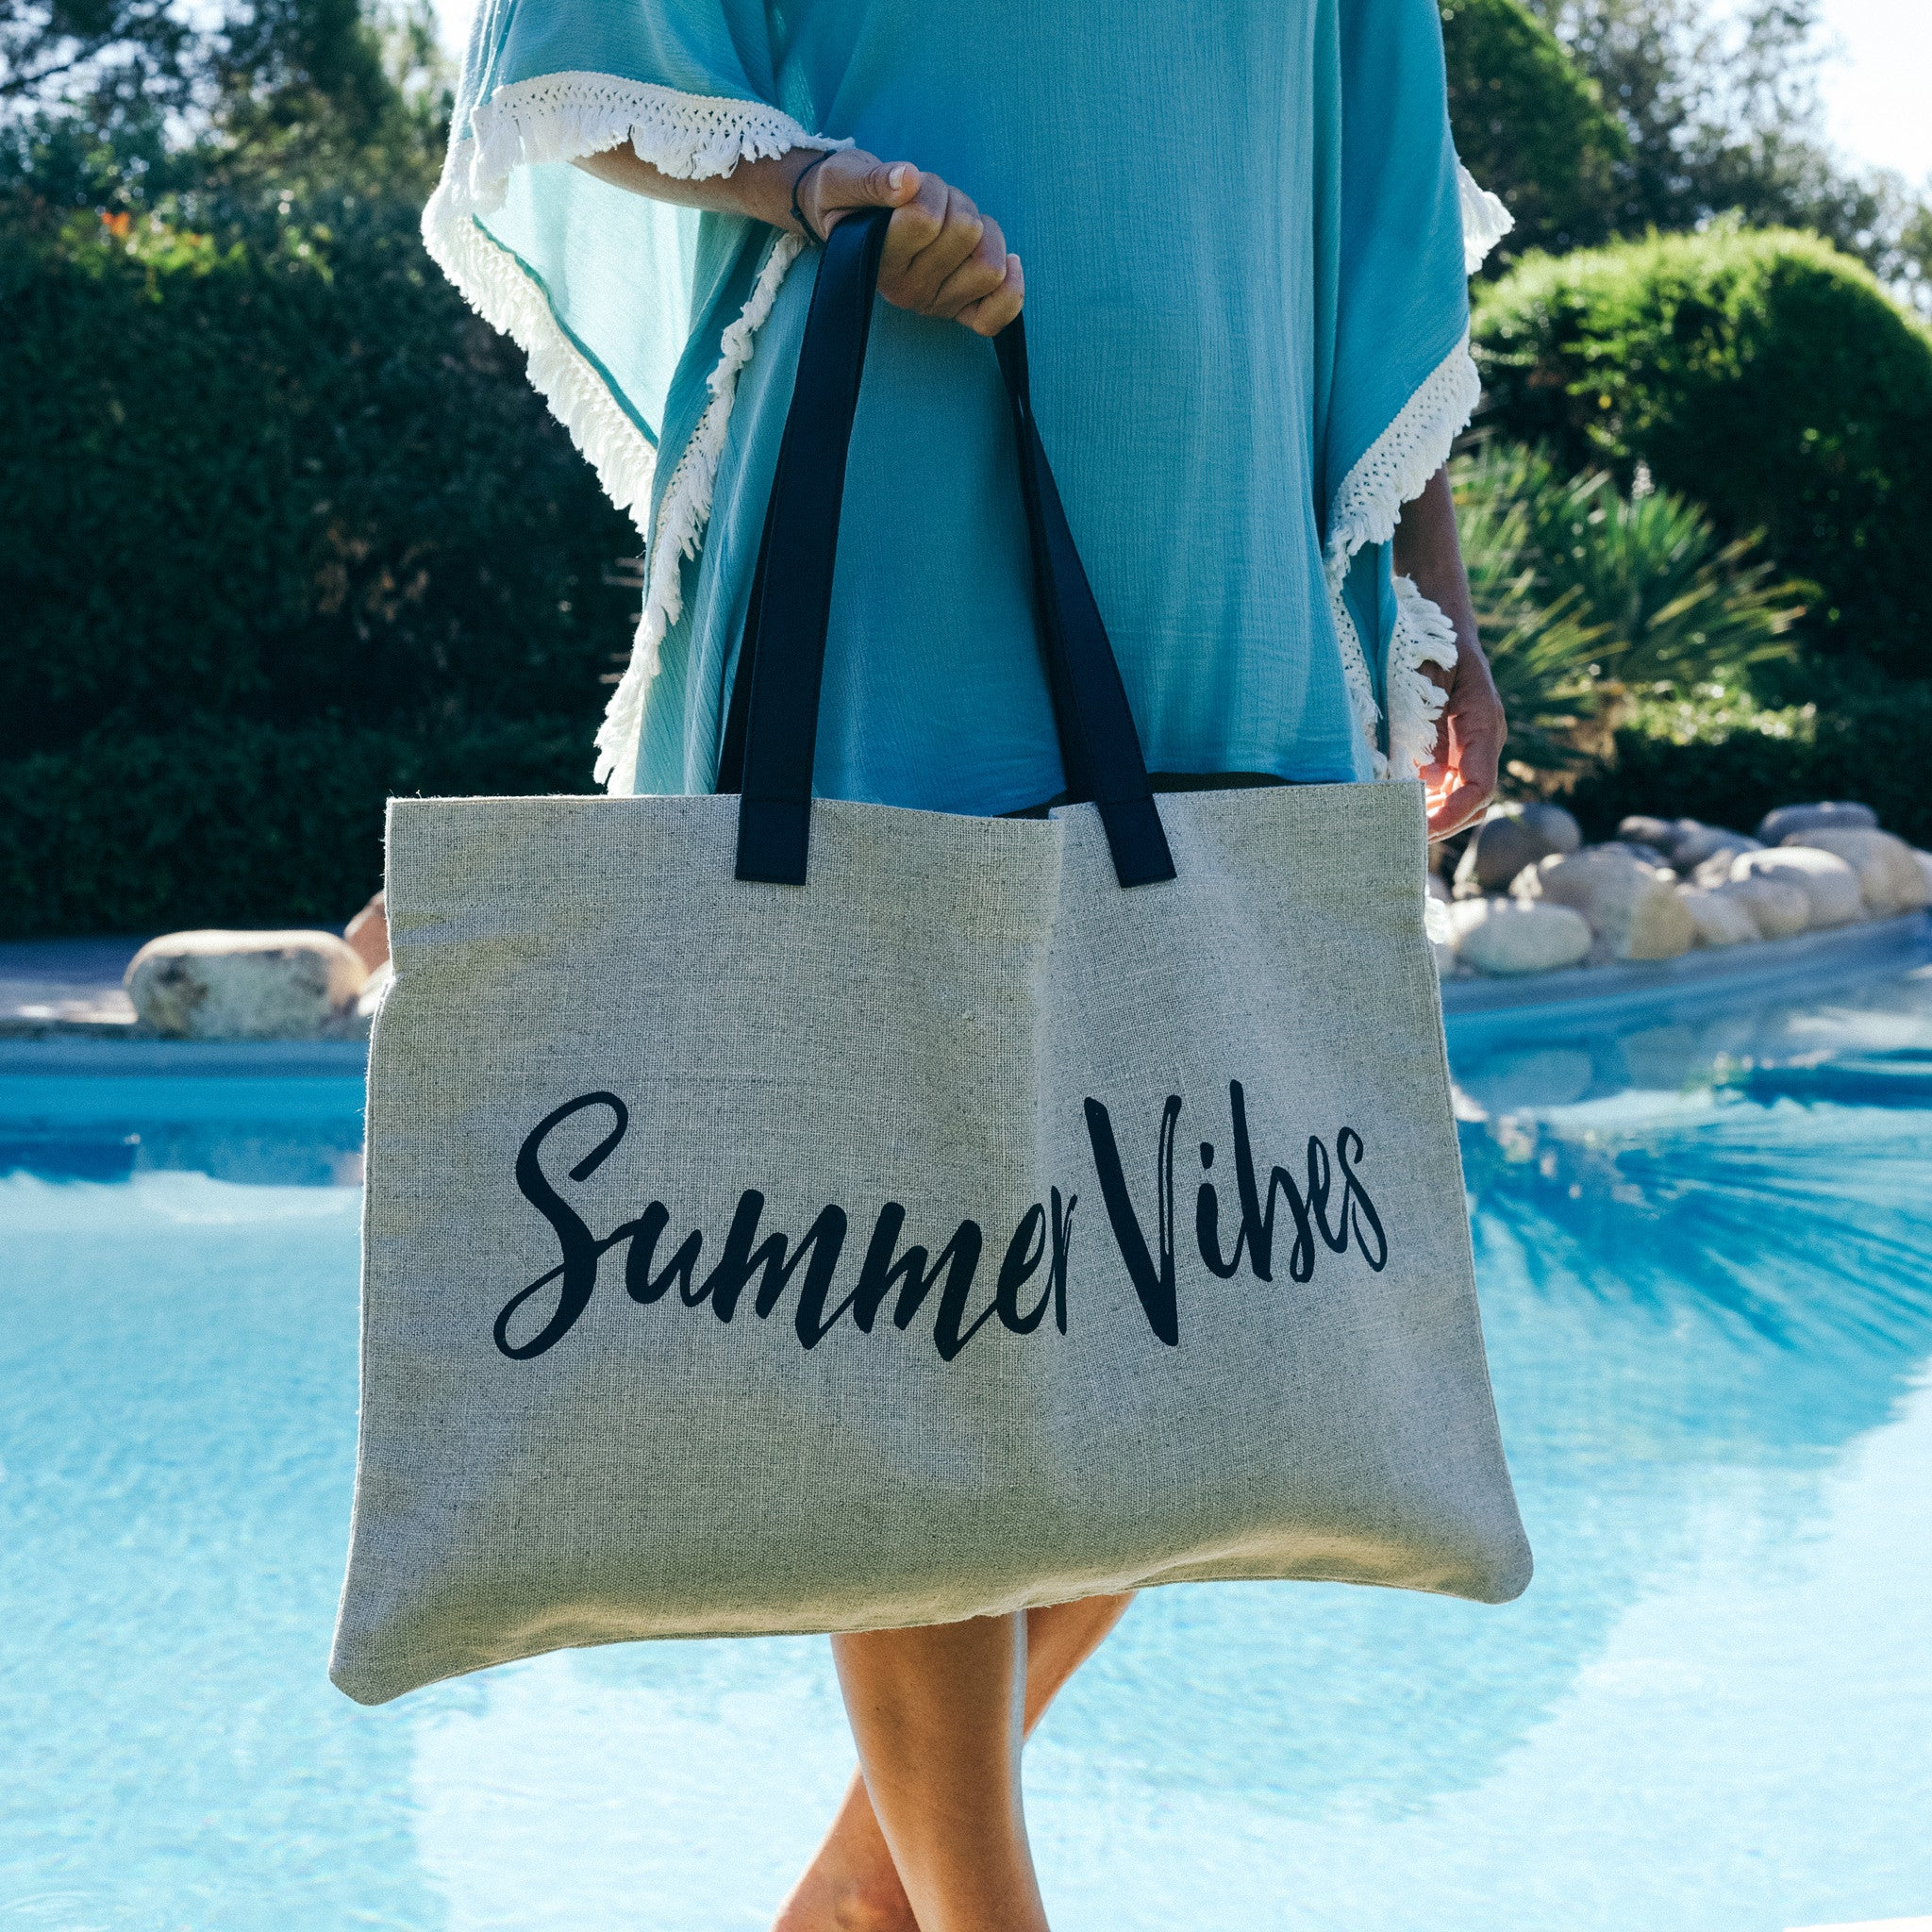 island-vibes-summer-bag